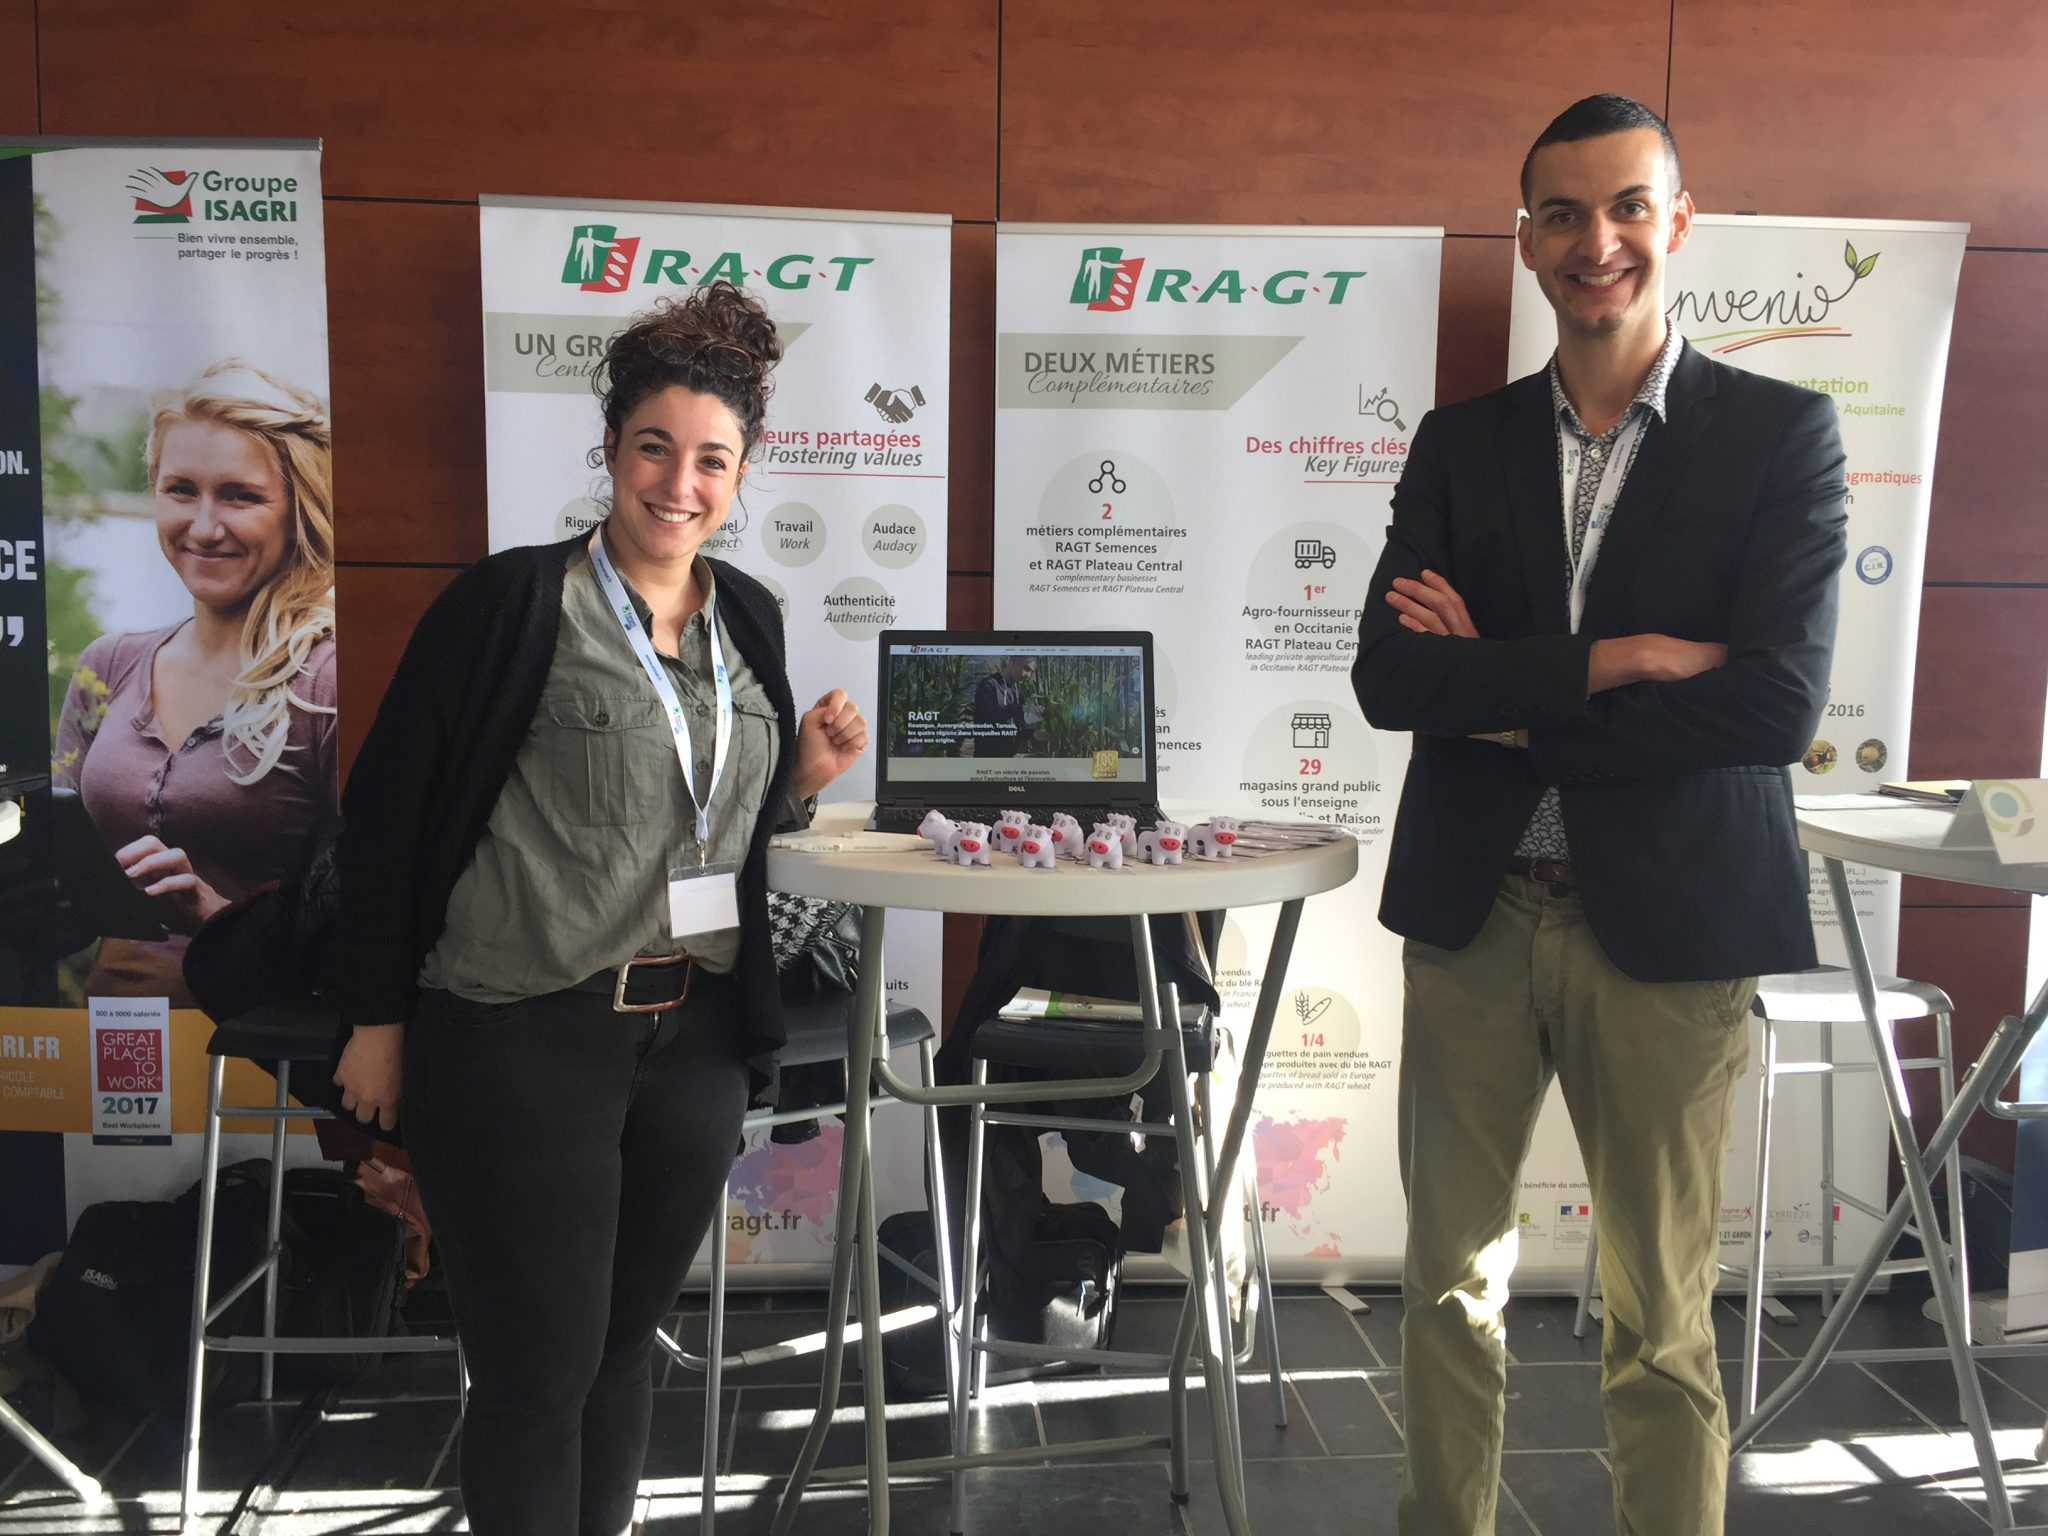 RAGT present at the ENSAT exhibition in Toulouse